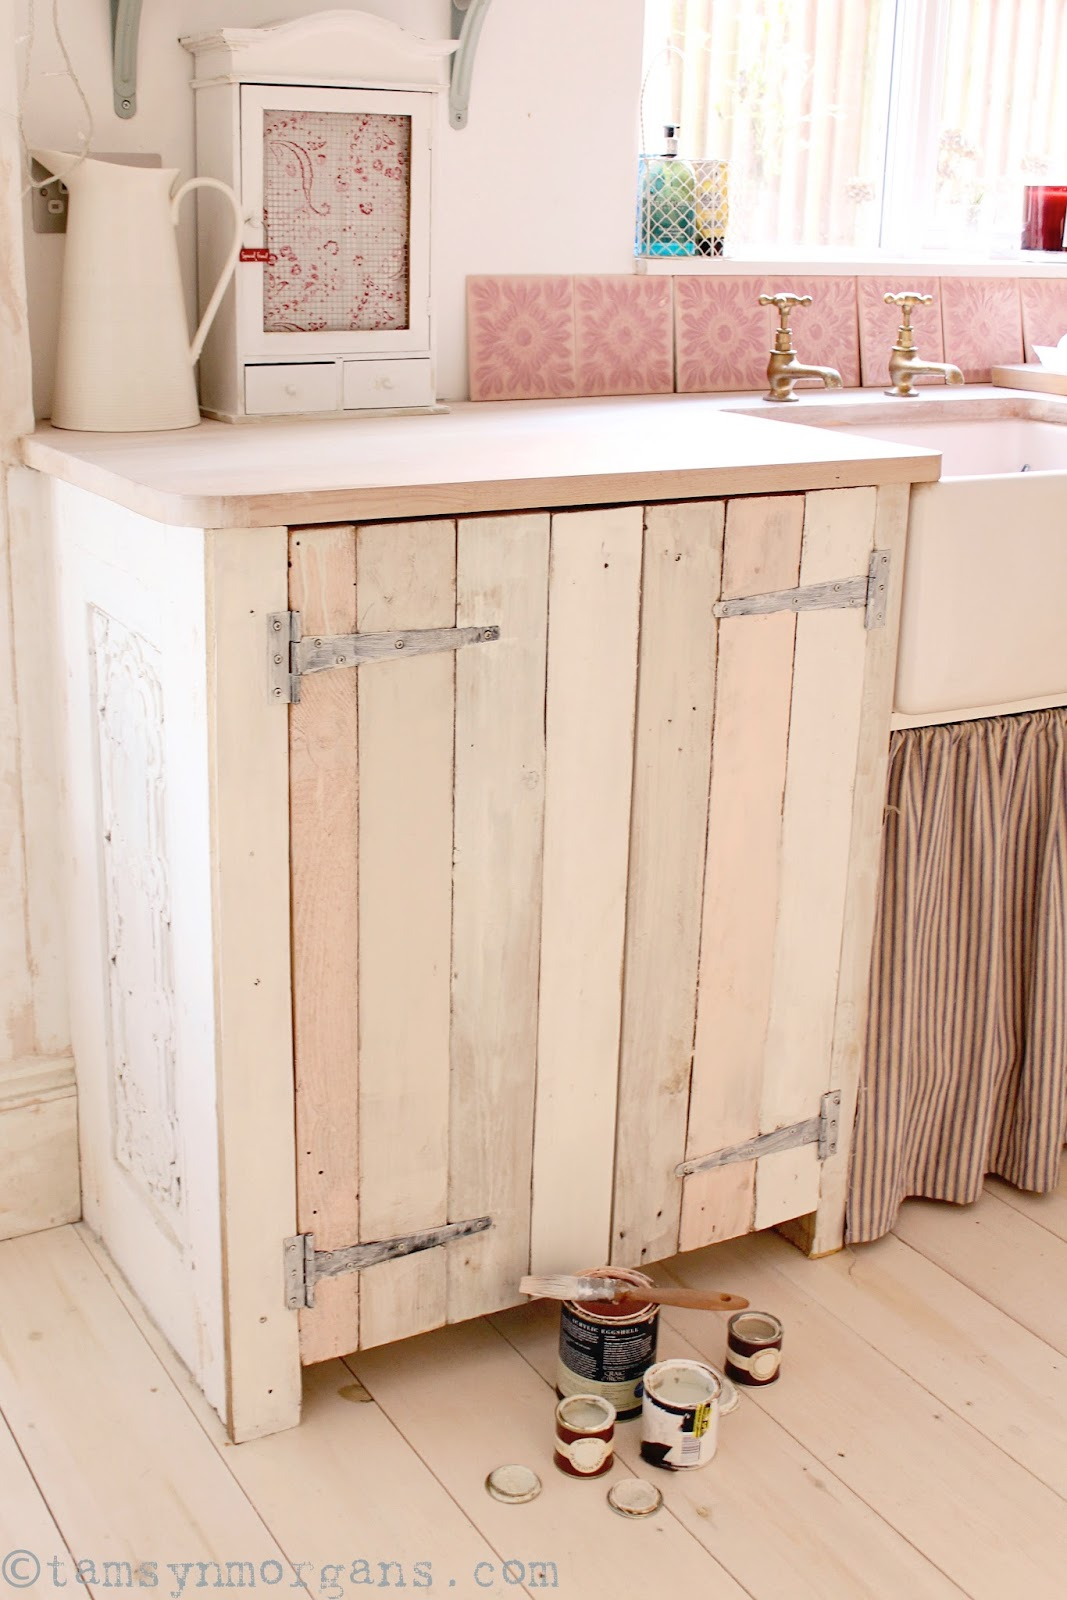 Upcycled pallet kitchen cupboard a work in progress the villa on mount pleasant - Kitchen cabinets pinterest ...